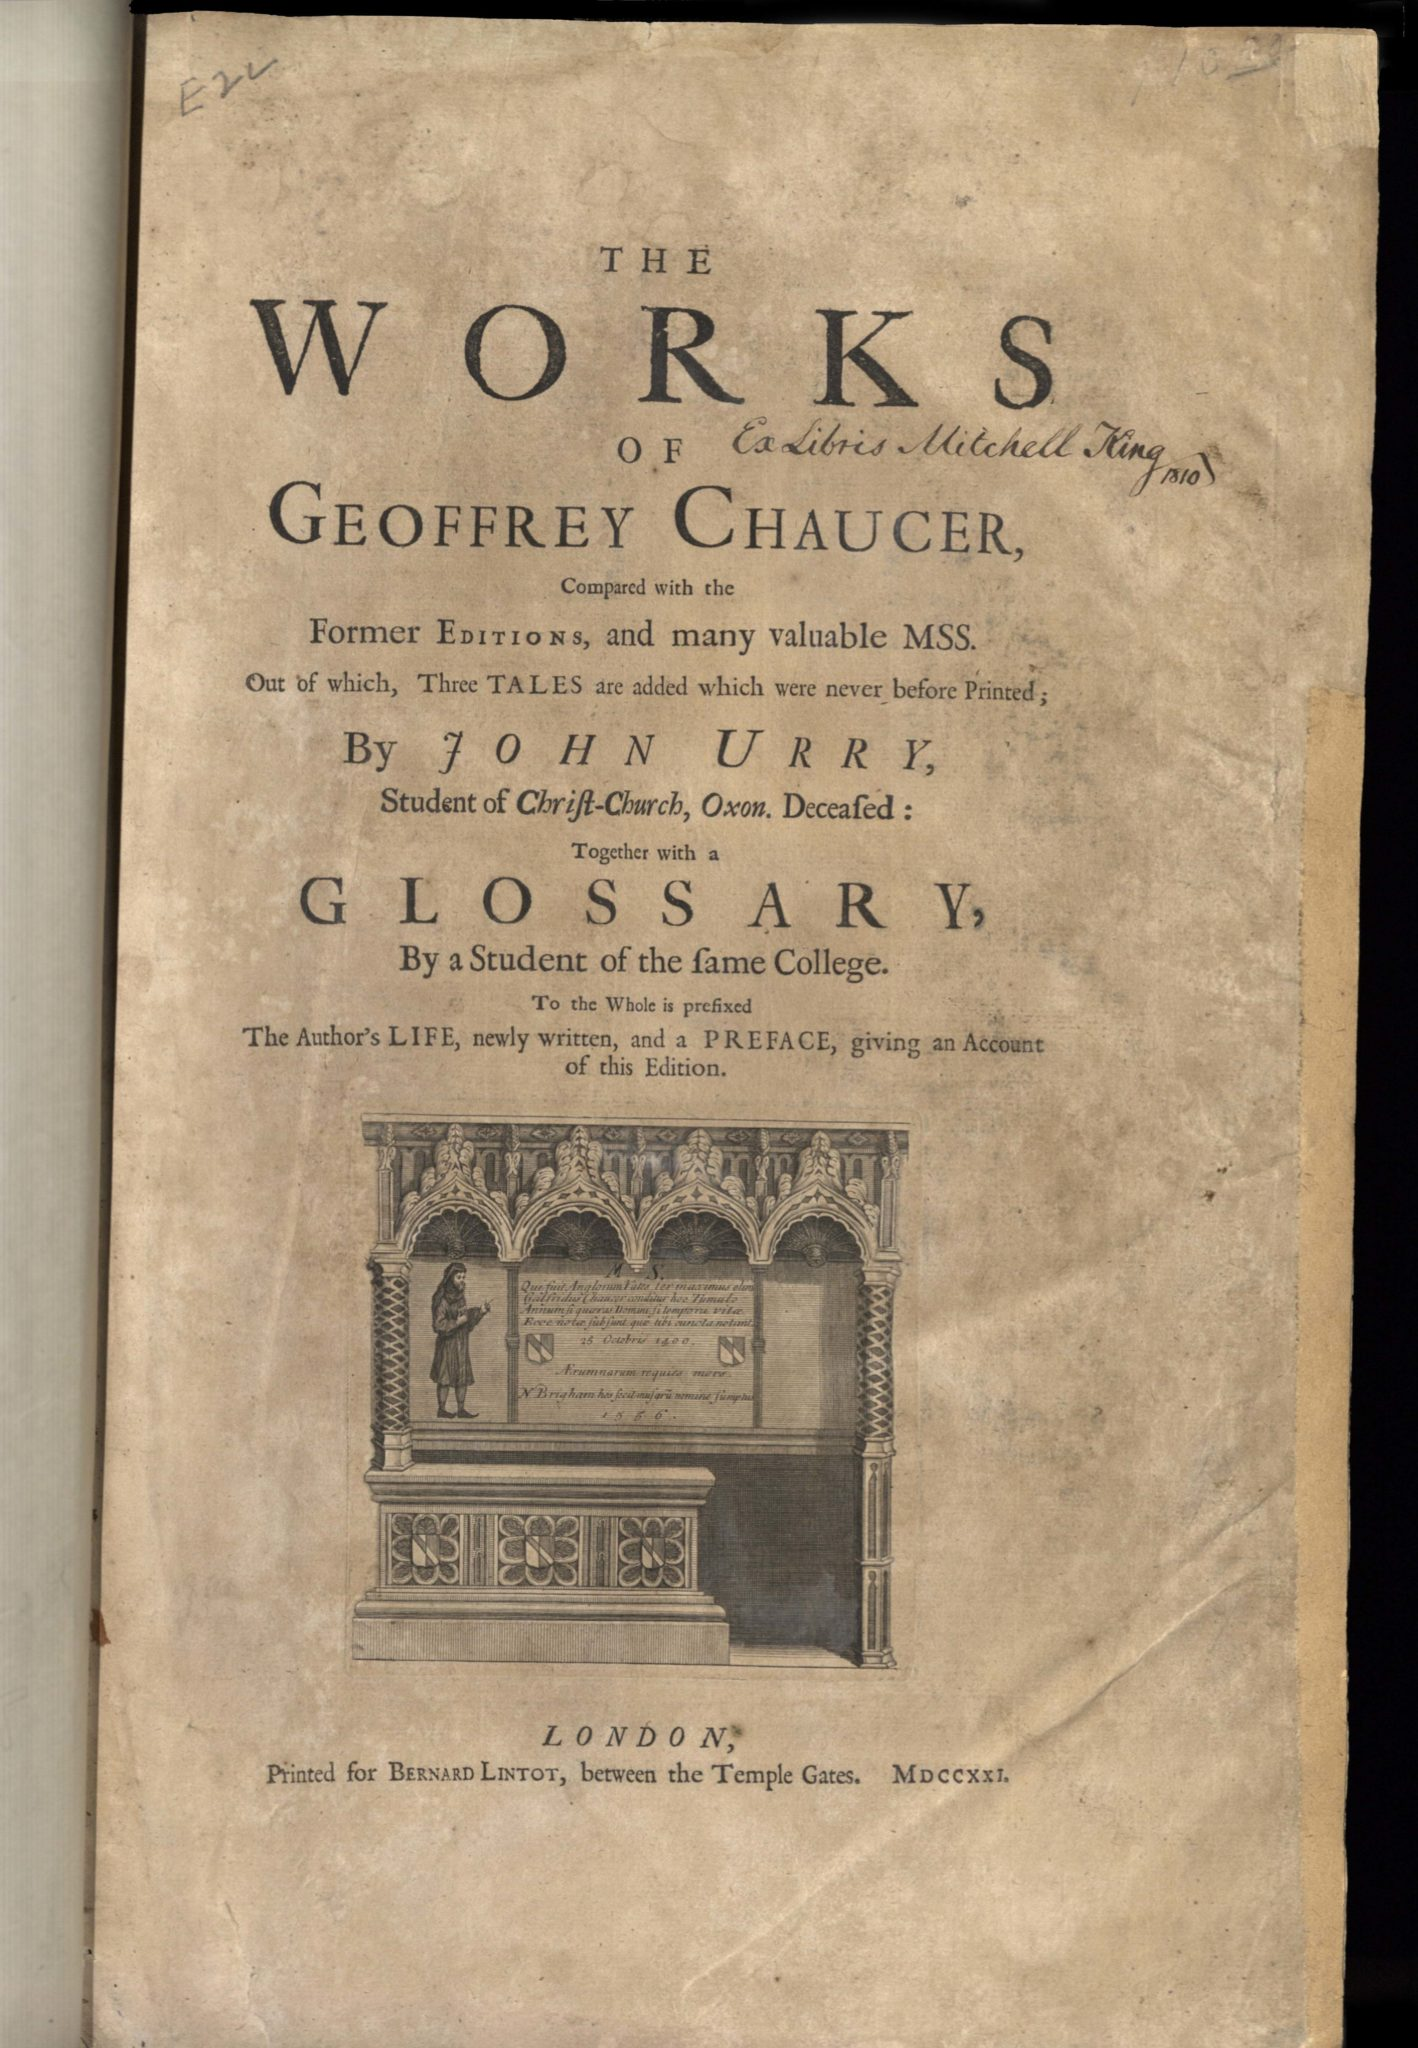 Chaucer, The Works of Geoffrey Chaucer, 1721, Title Page